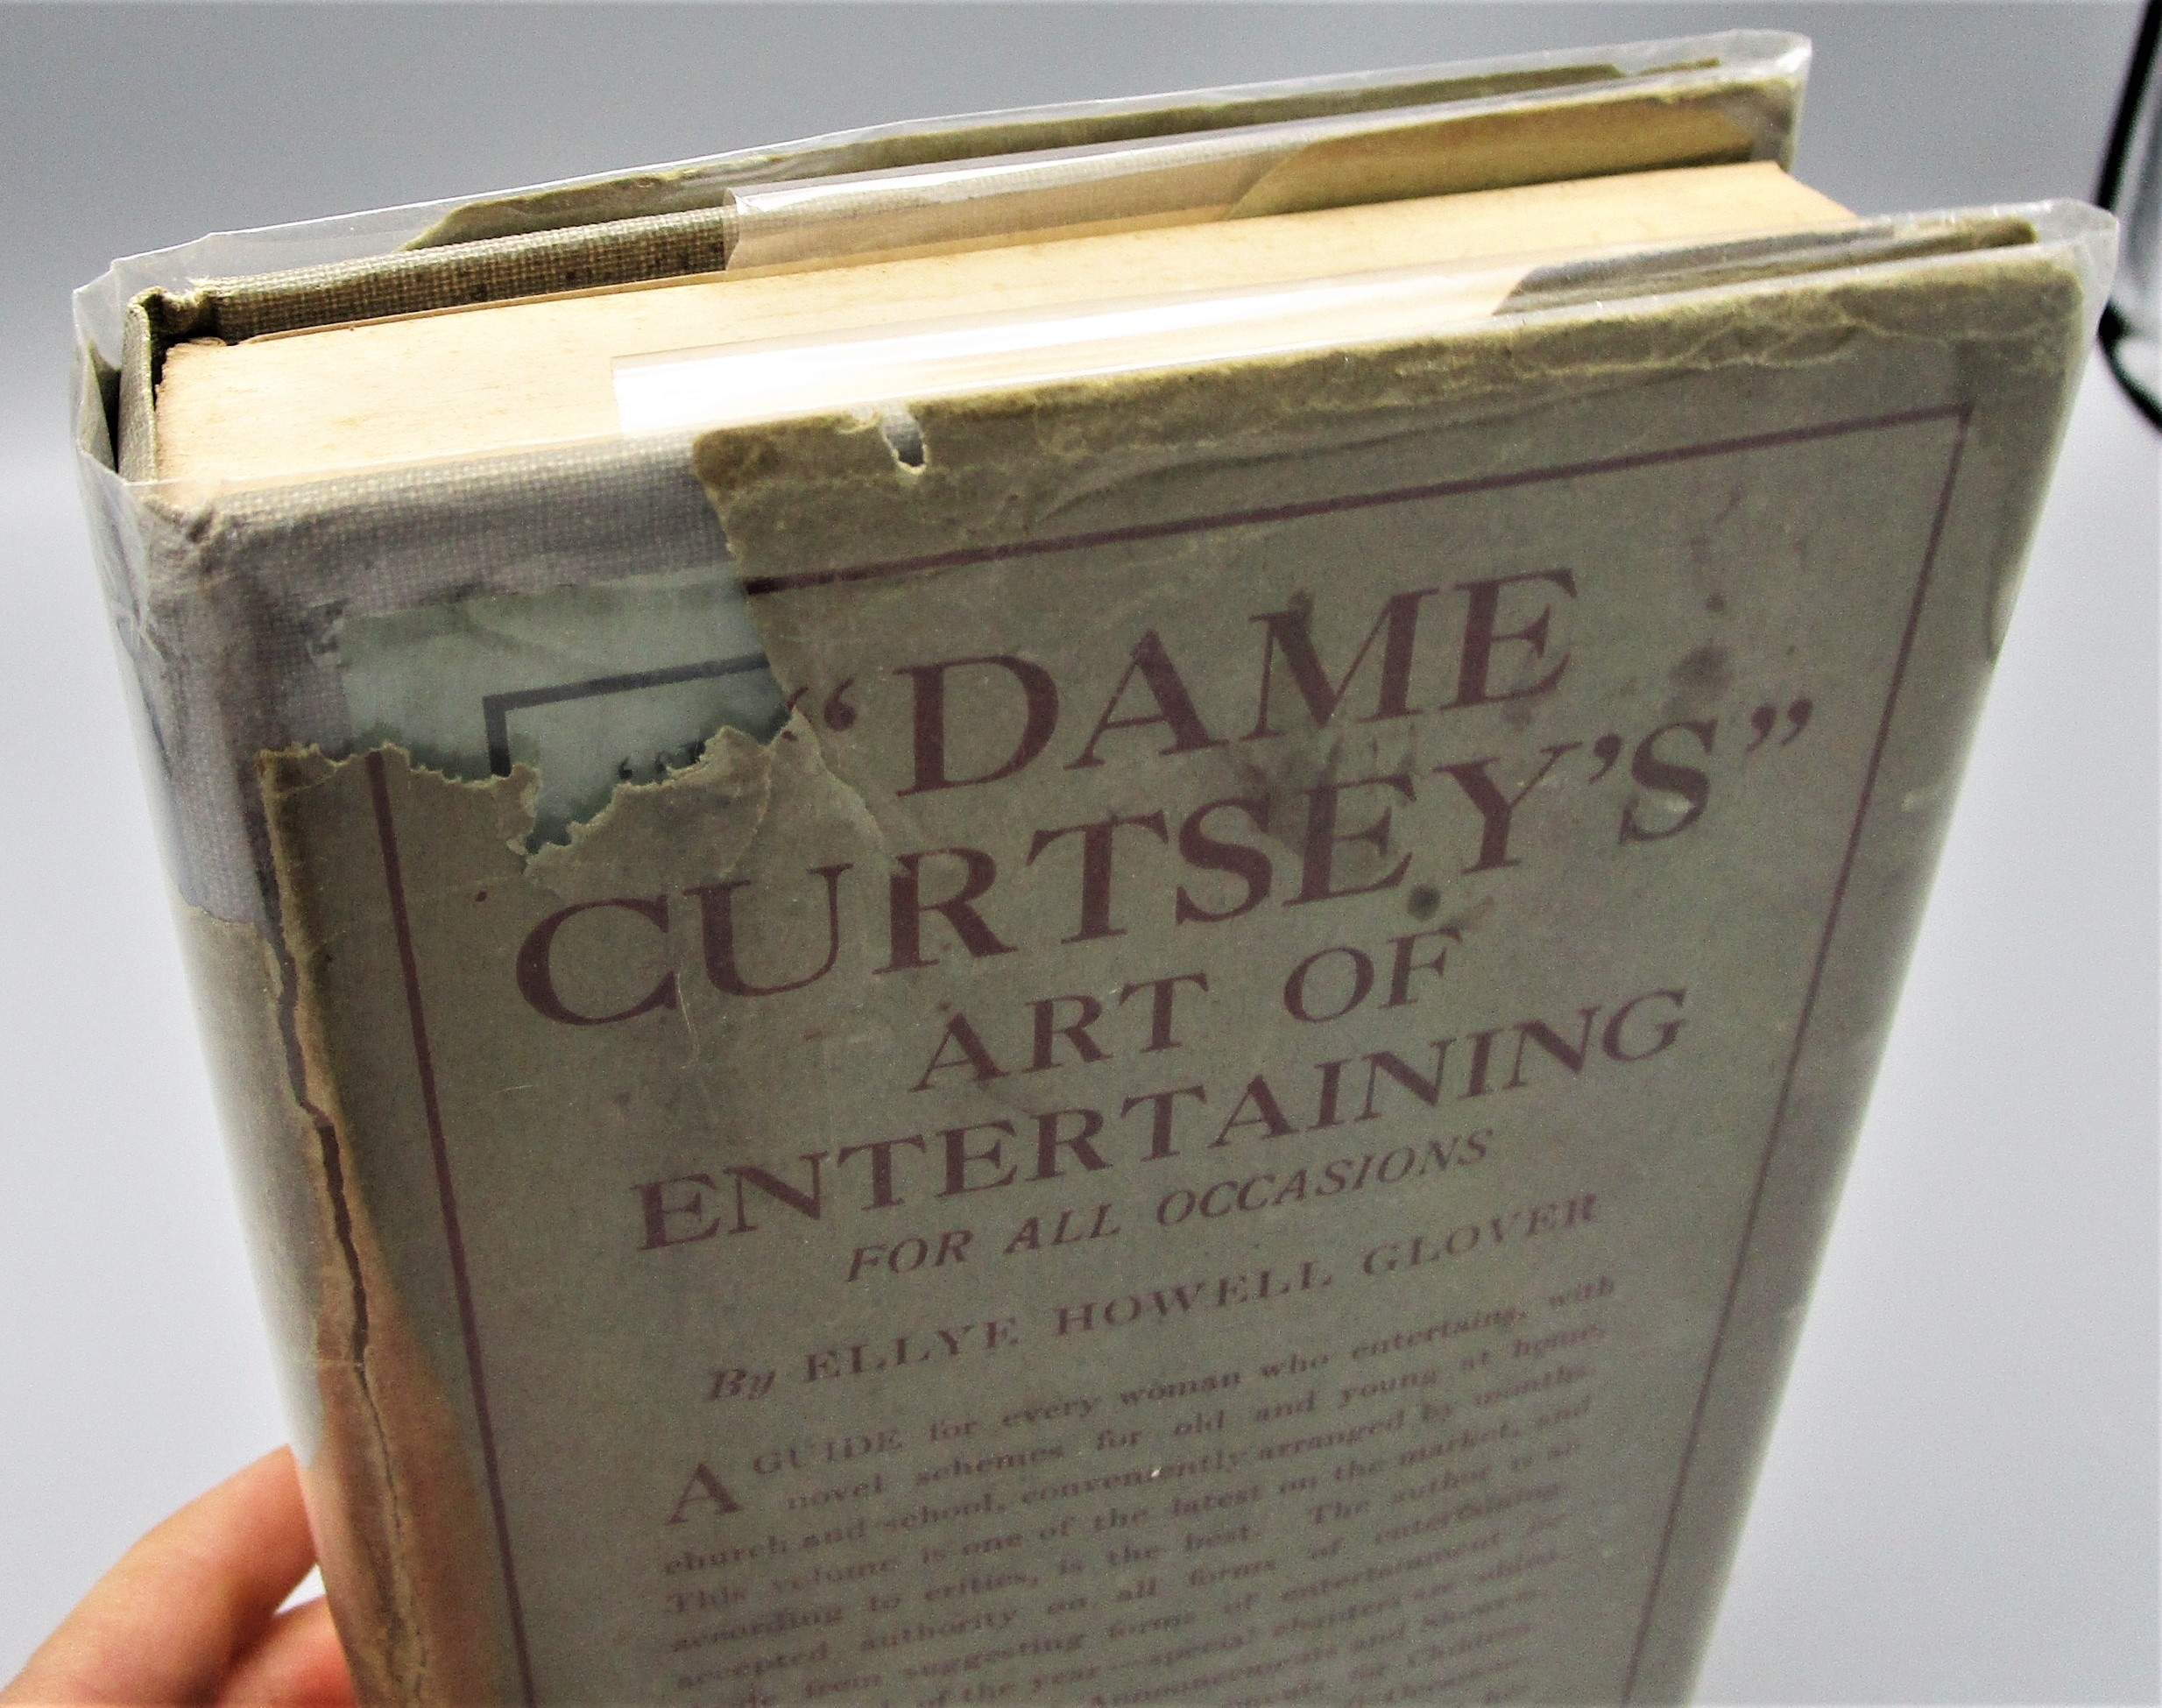 DAME CURTSEY'S ART OF ENTERTAINING, by Ellye Howell Glover - 1918